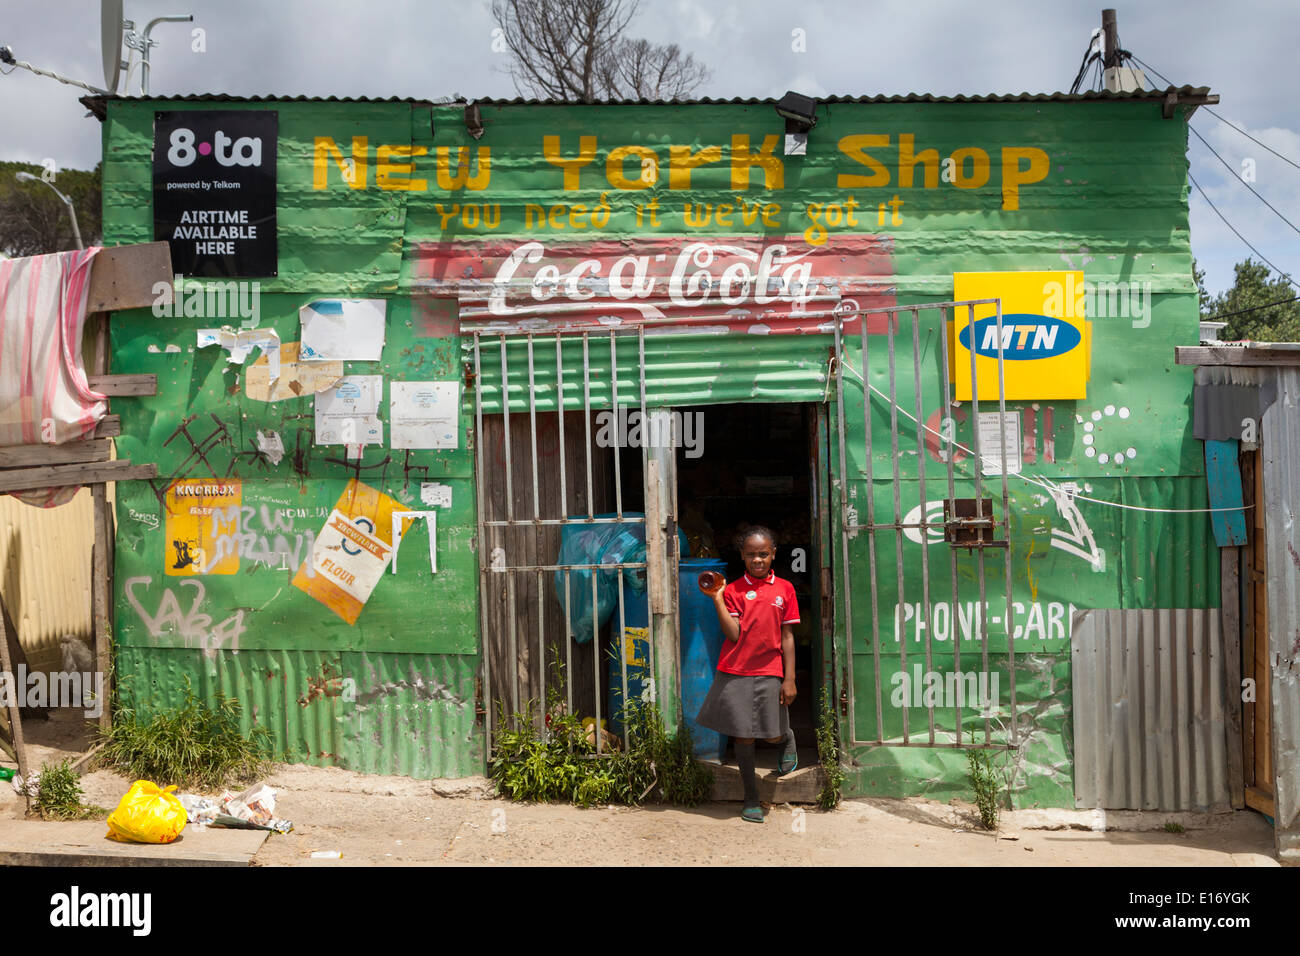 Convenience store in Imizamo Yethu Township (Mandela Park), Cape Town, South Africa Stock Photo